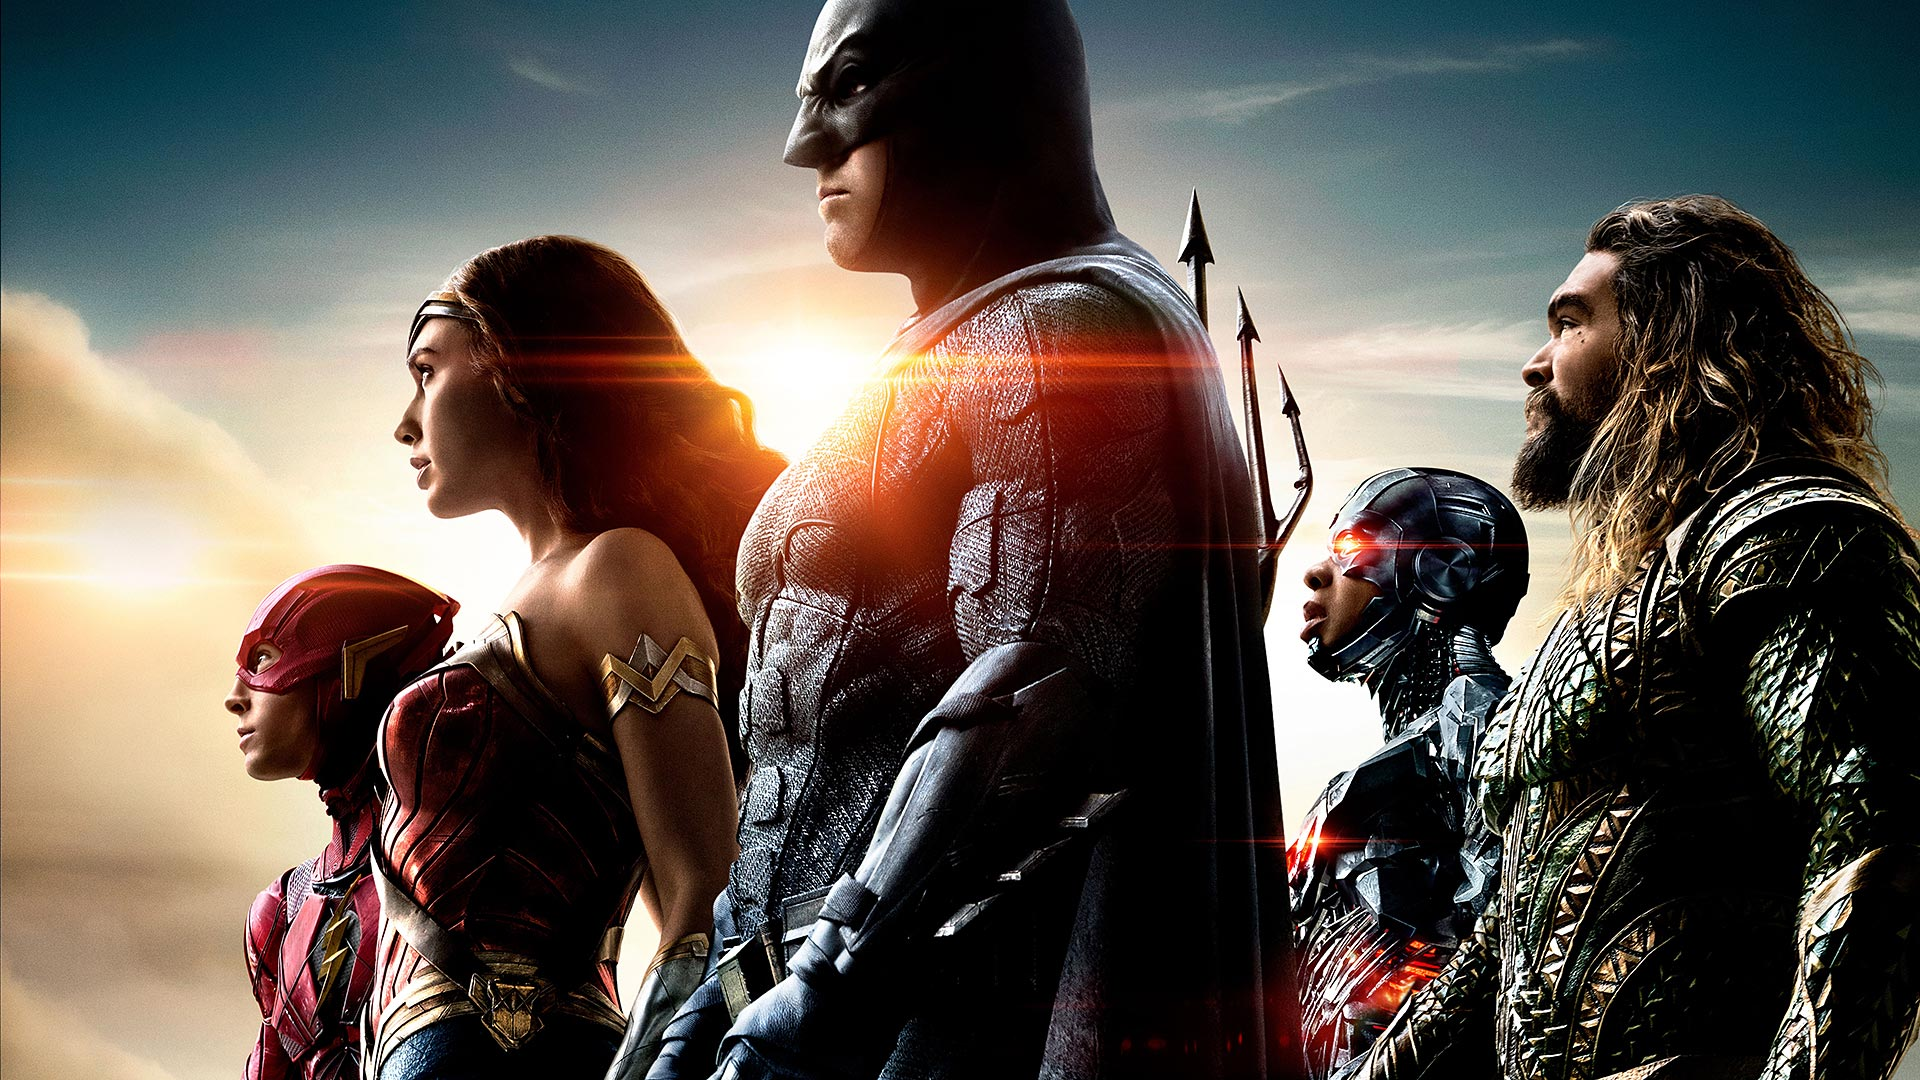 Justice League Movie Theme For Windows 10 8 7